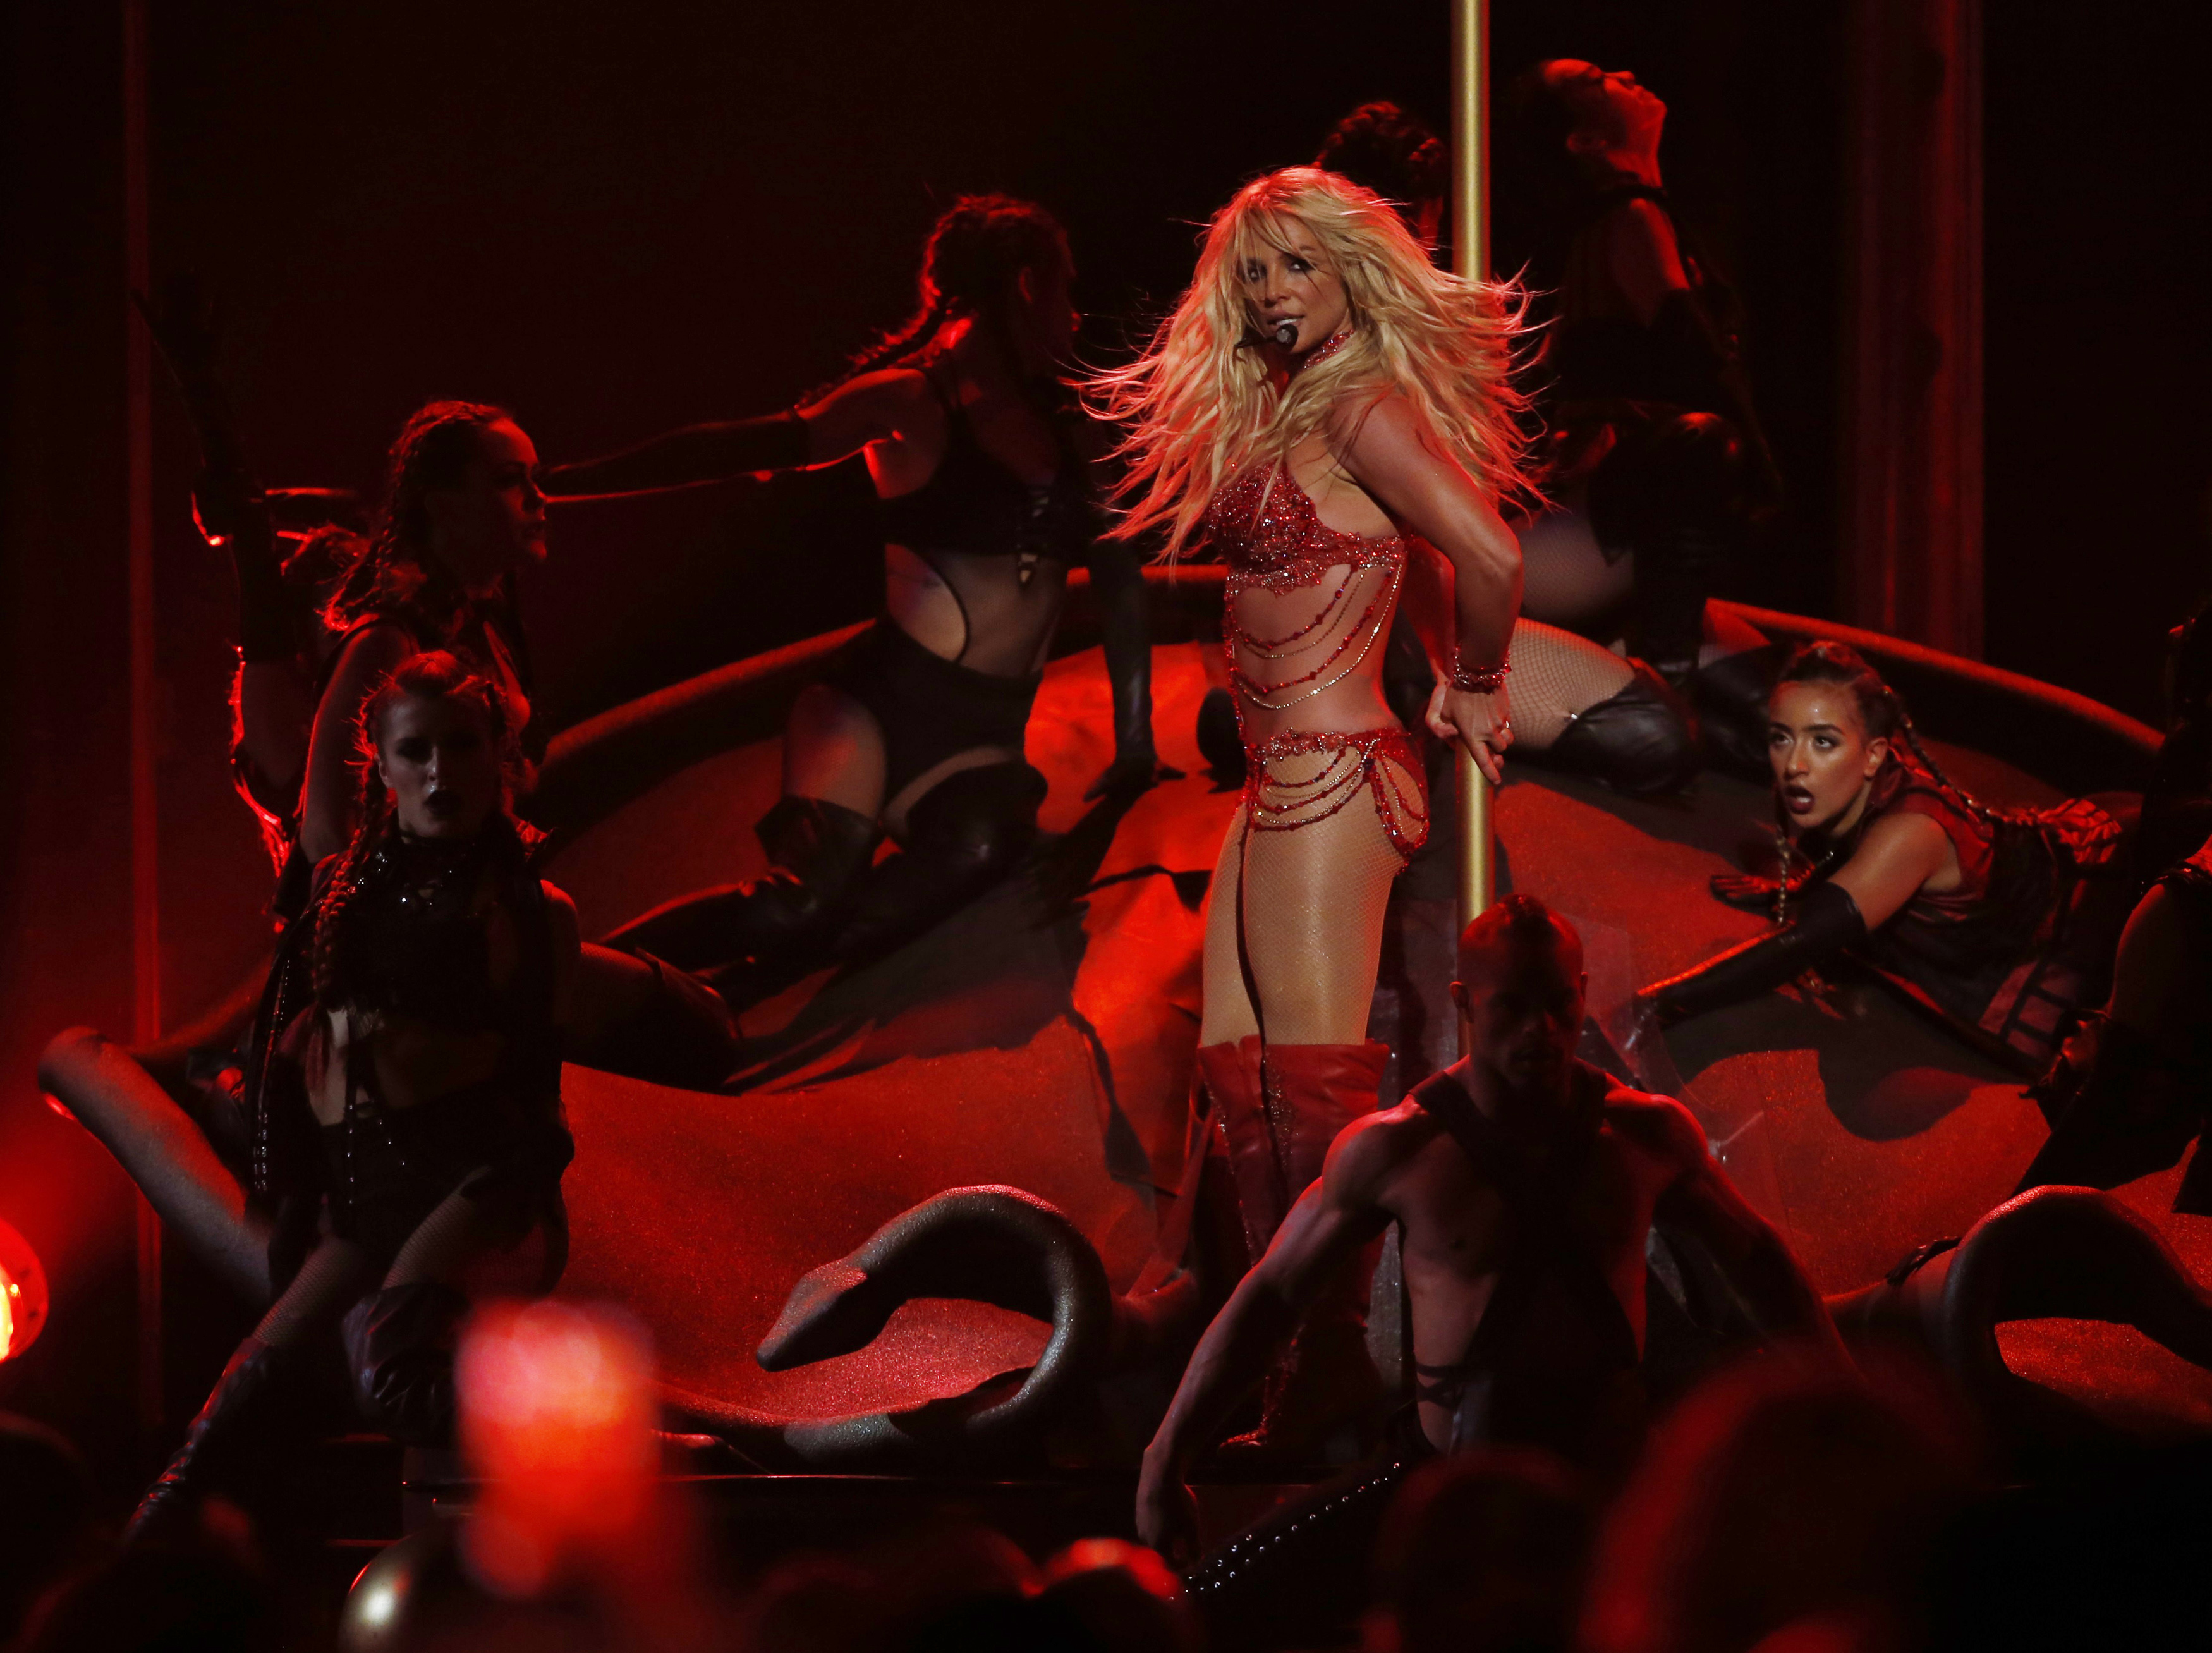 Millennium Award recipient Britney Spears performs a medley of songs at the 2016 Billboard Awards in Las Vegas, Nevada, U.S., May 22, 2016.